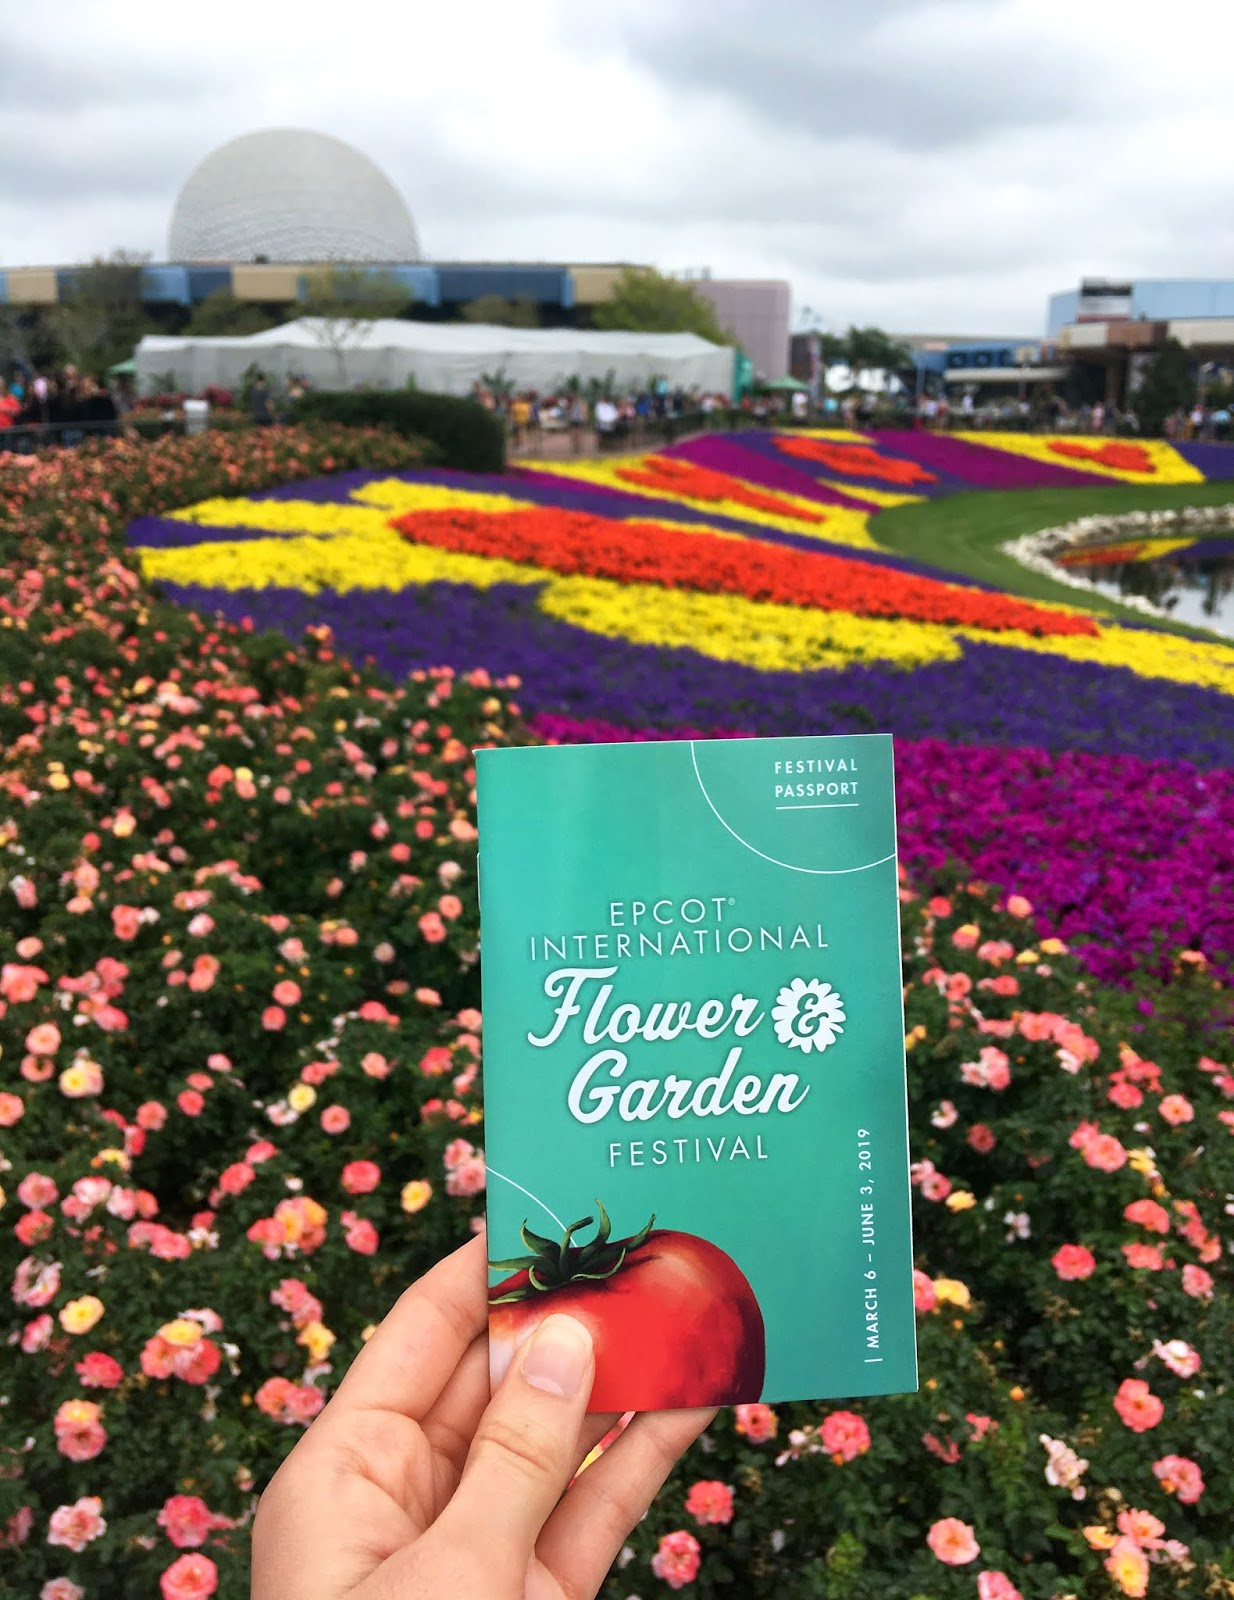 2019 Epcot International Flower and Garden Festival guide